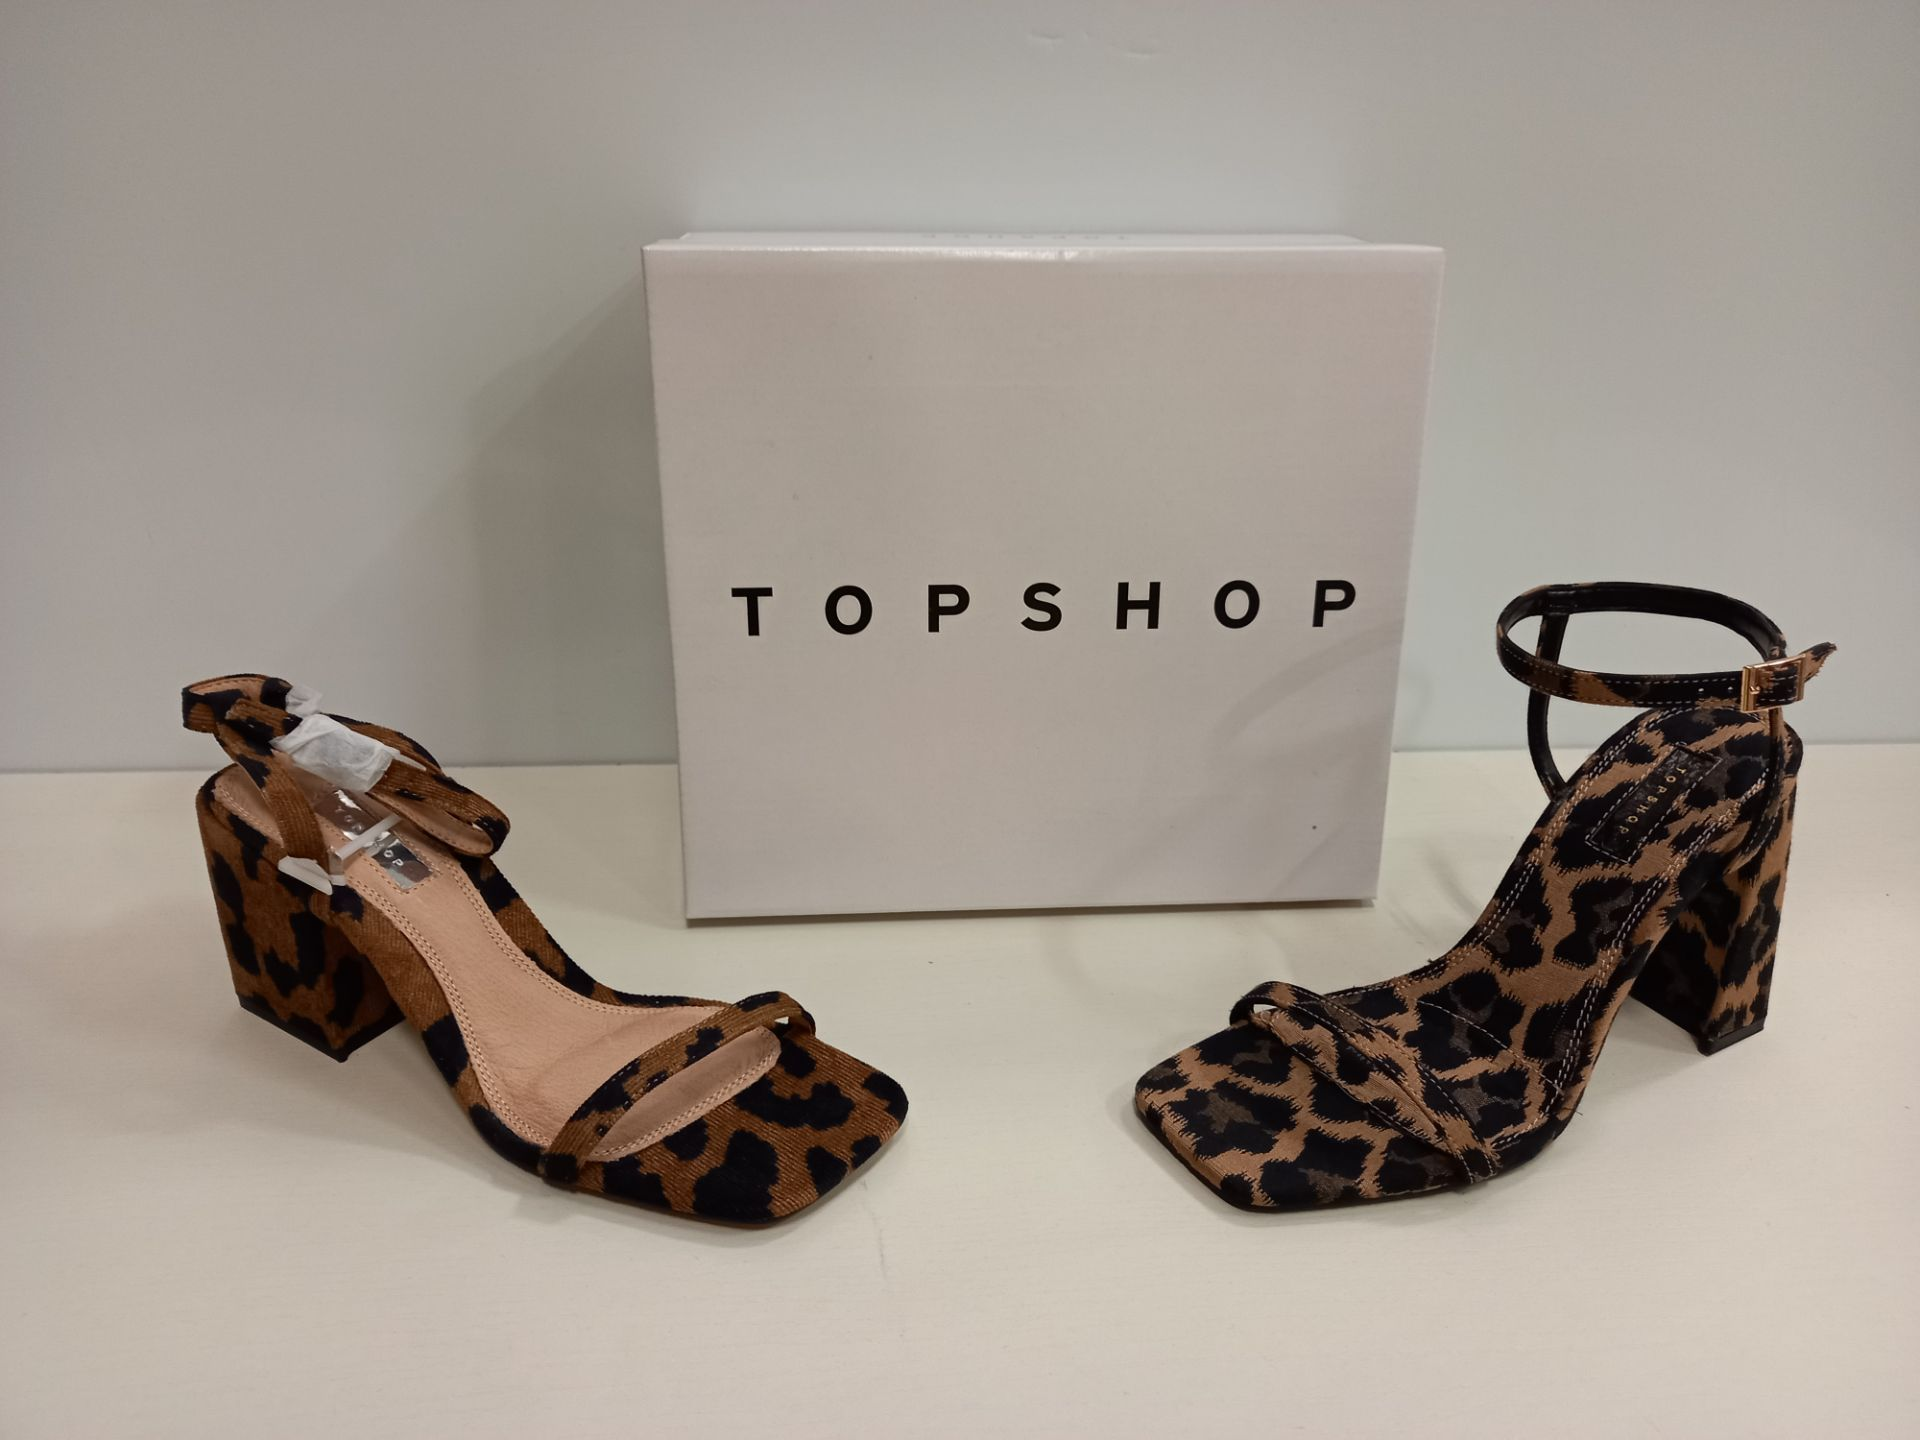 14 X BRAND NEW TOPSHOP SHOES - 13 X NORA TRUE LEOPARD SHOES UK SIZE 5 RRP £39.00 AND 1 X ROCCO